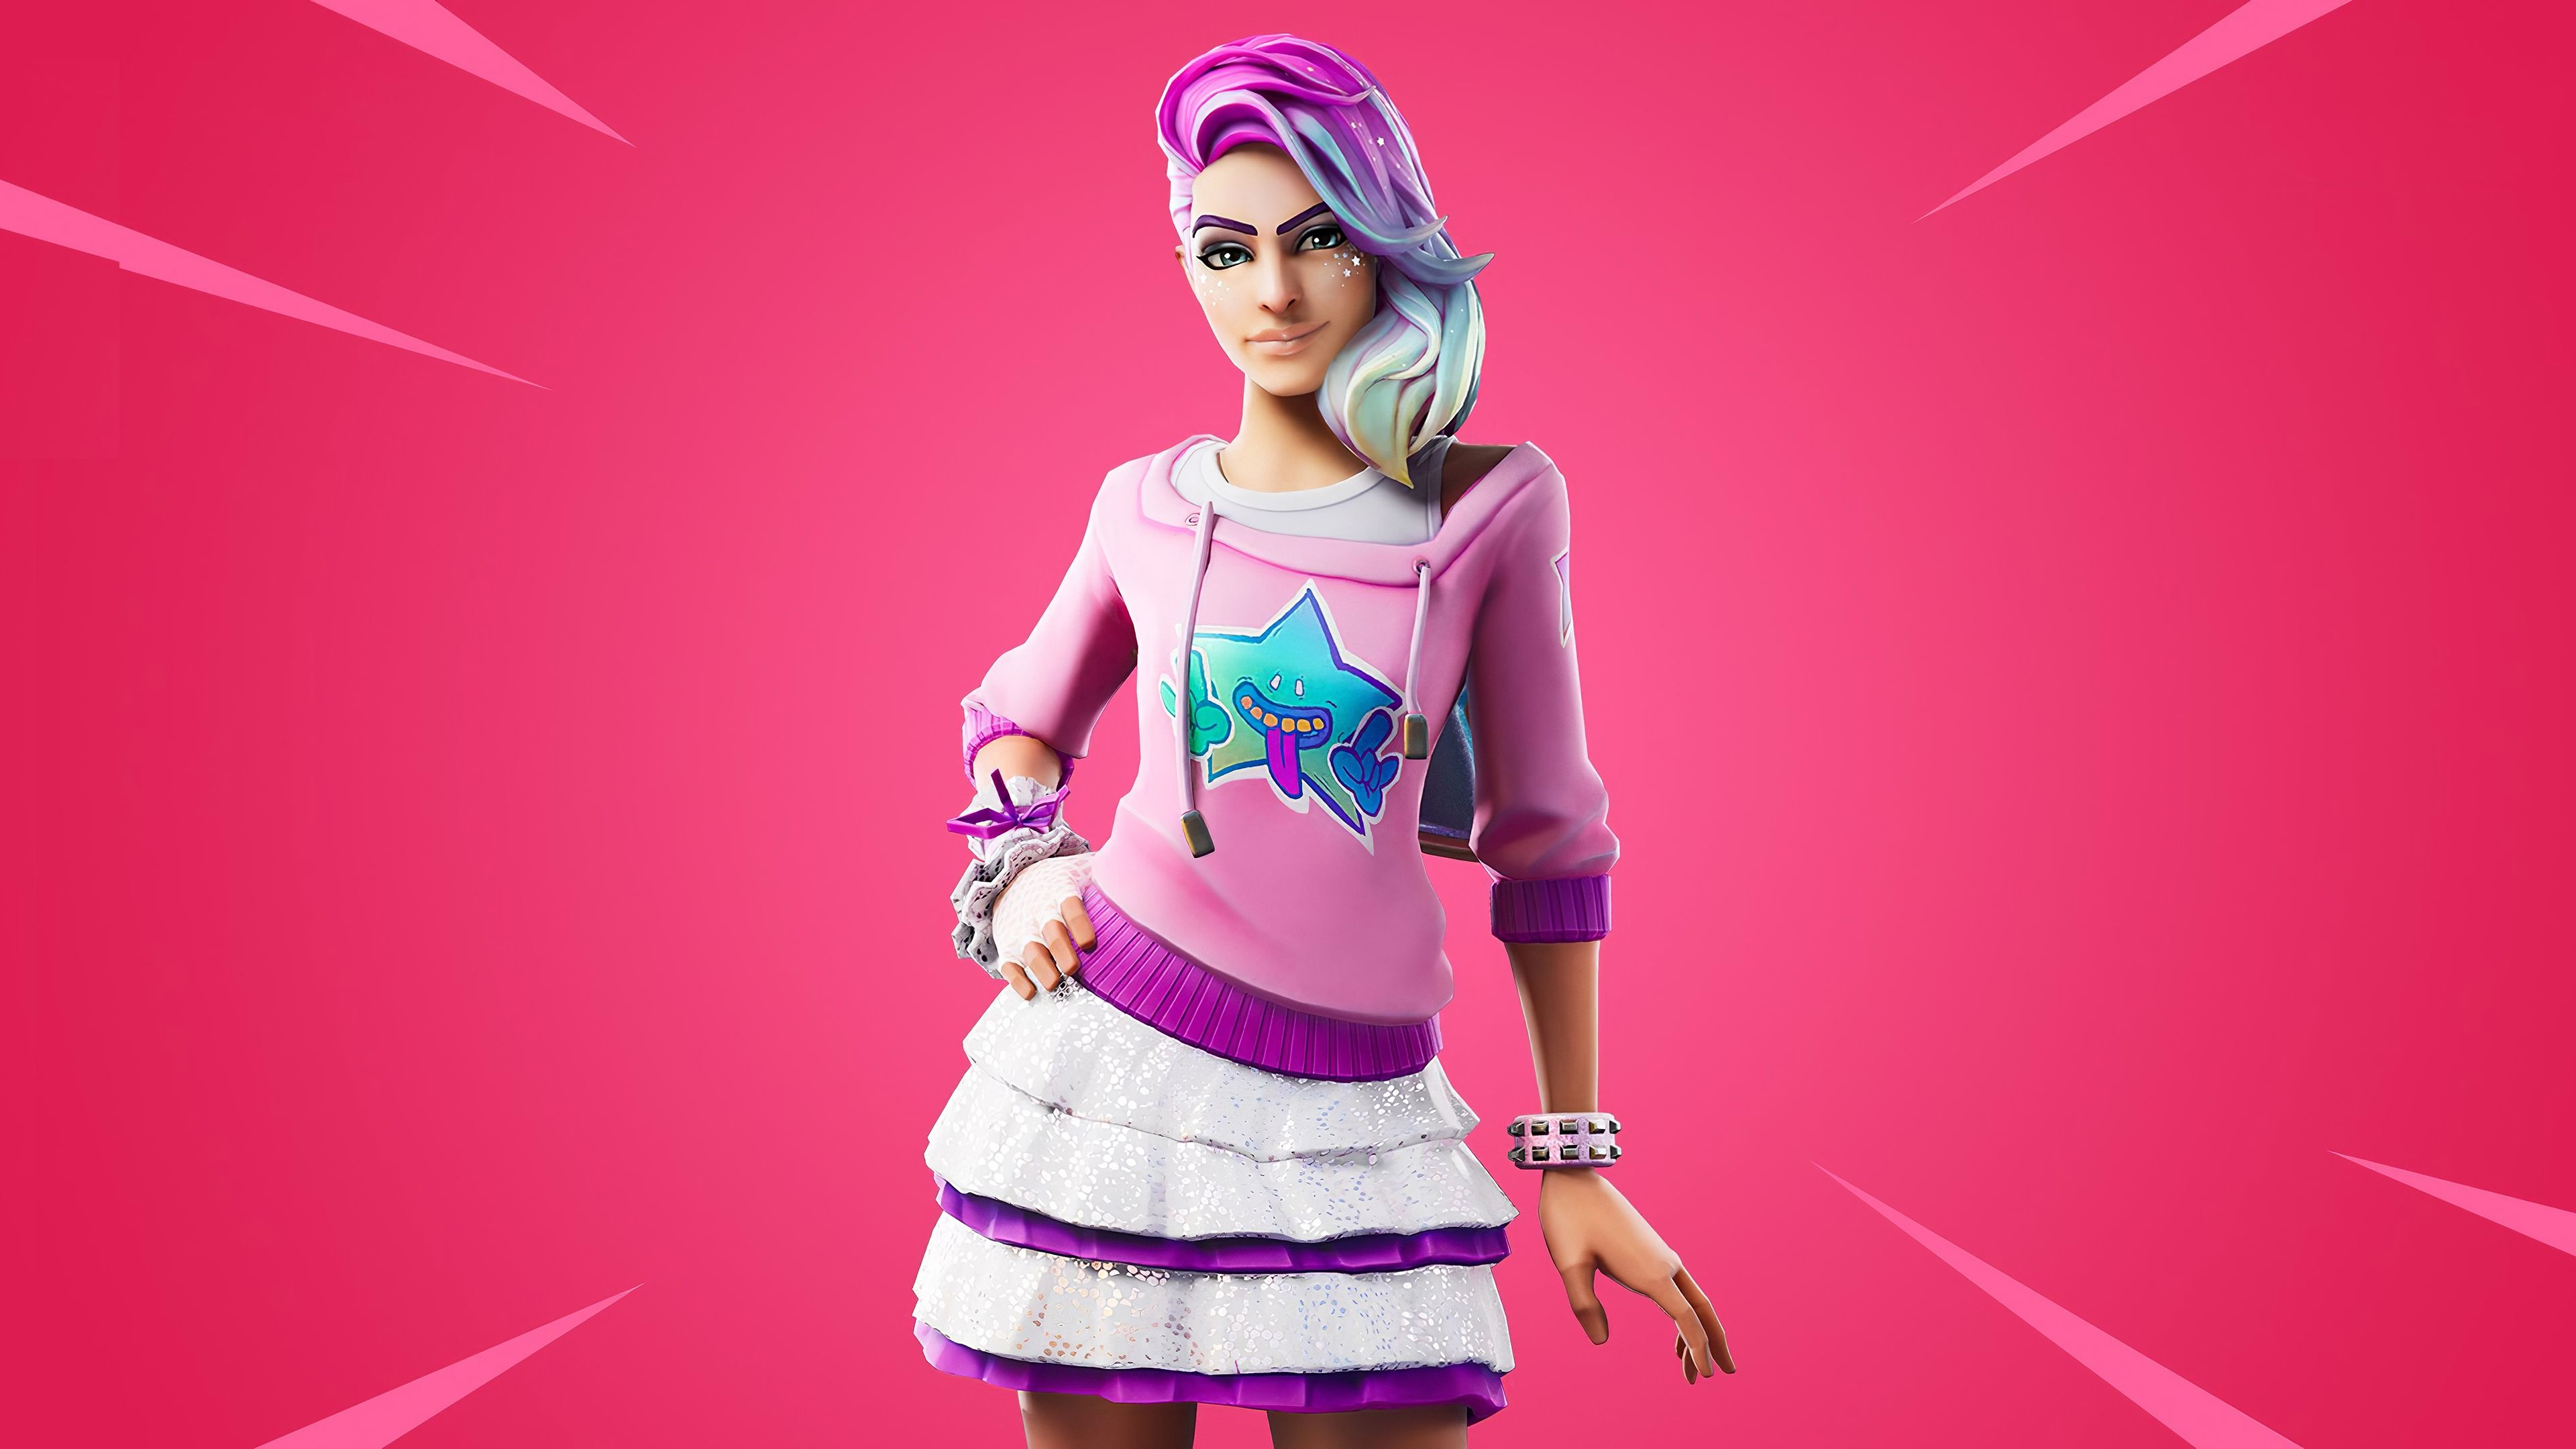 3840x2160 Fortnite chapter two, video game, 2019, Starlie